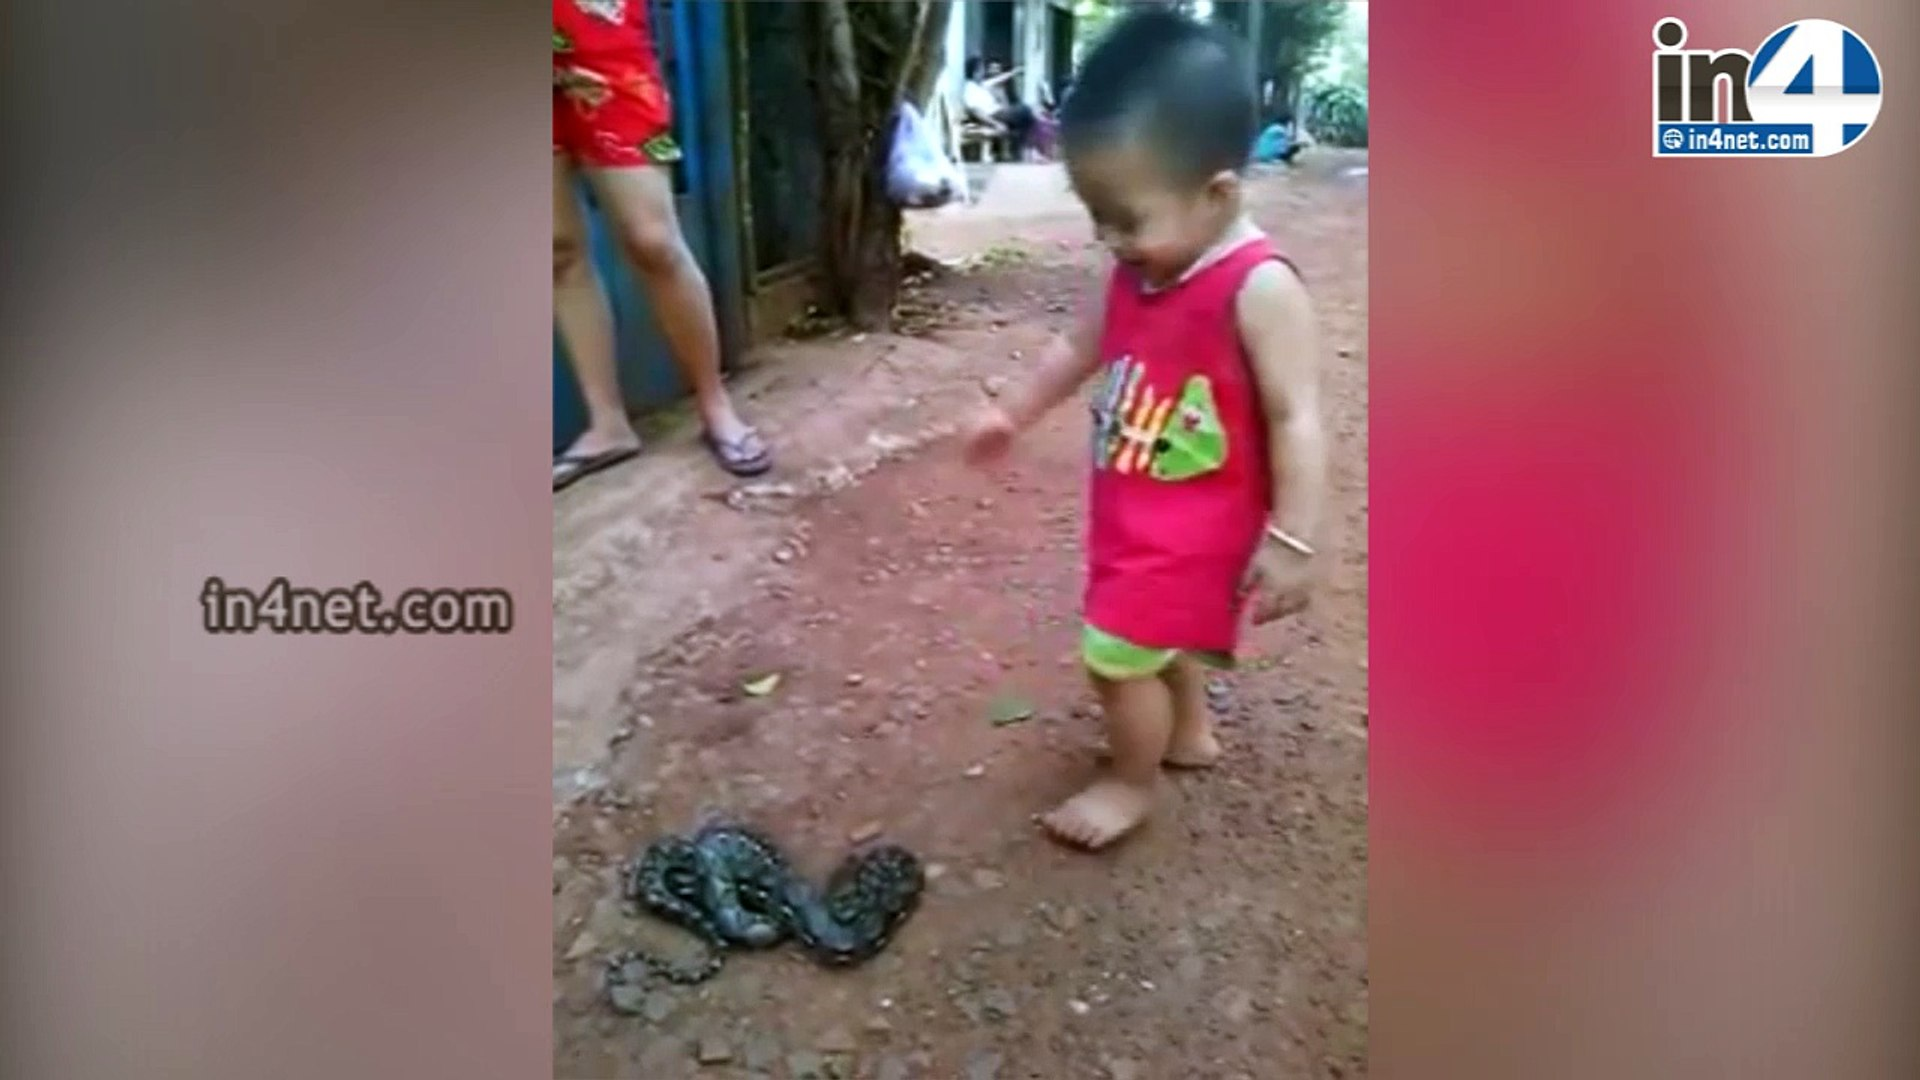 KID PLAYING WITH SNAKE | IN4NET